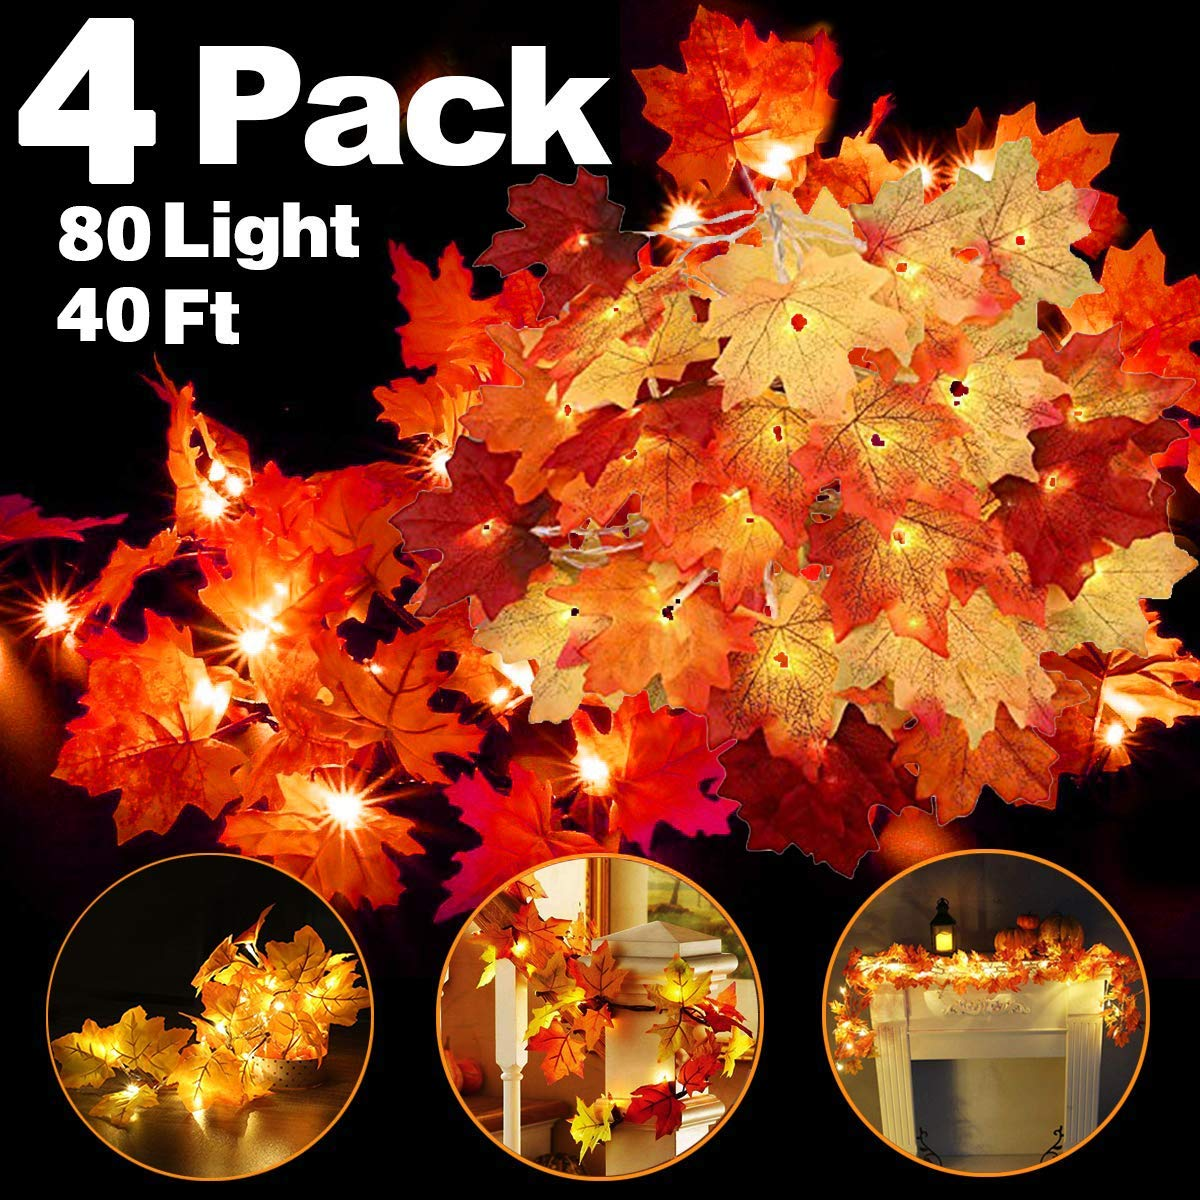 4 Pack Thanksgiving Fall Decorations Leaf Garland String Lights for Indoor Outdoor 10 ft 20 LED Maple Leaves Light 3 AA Battery Operated Decor Home Party Fireplace Harvest (4Pack Lighted Fall Garland) by Camlinbo